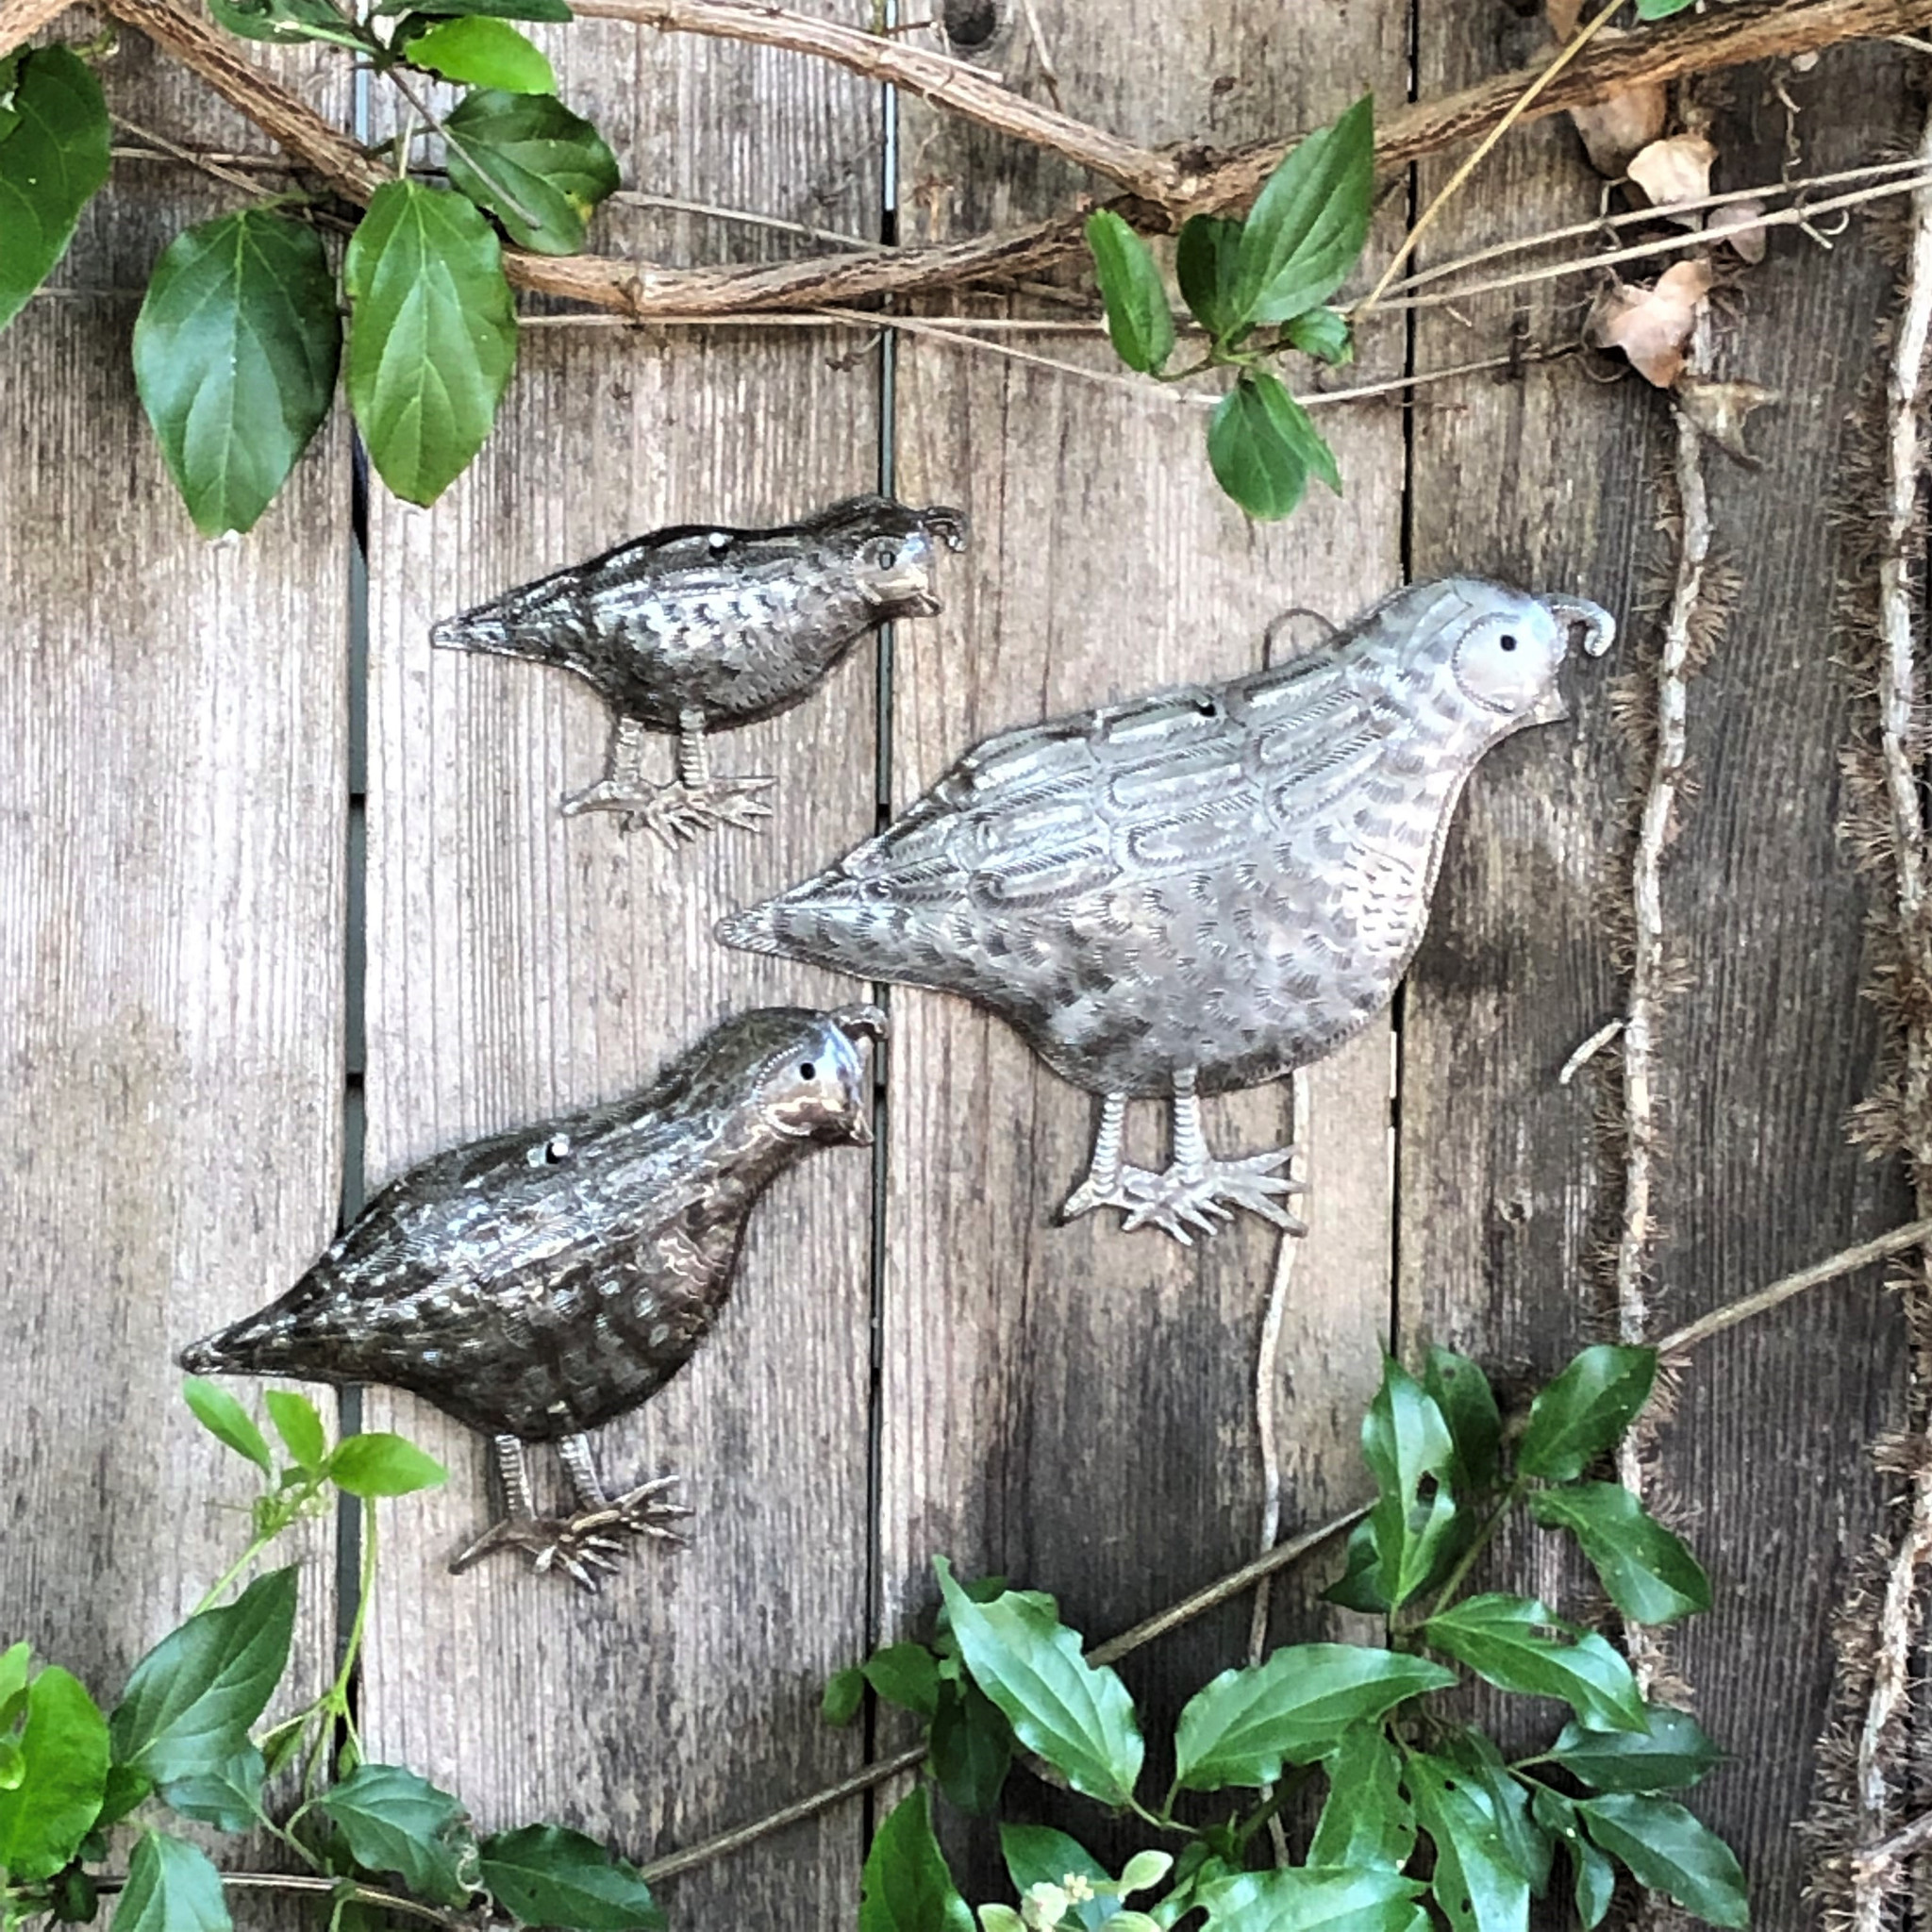 Metal Quail Covey Facing Right Handmade In Haiti Set Of 3 Garden Wall Art 10 5 X 7 8 X 6 And 5 5 X 4